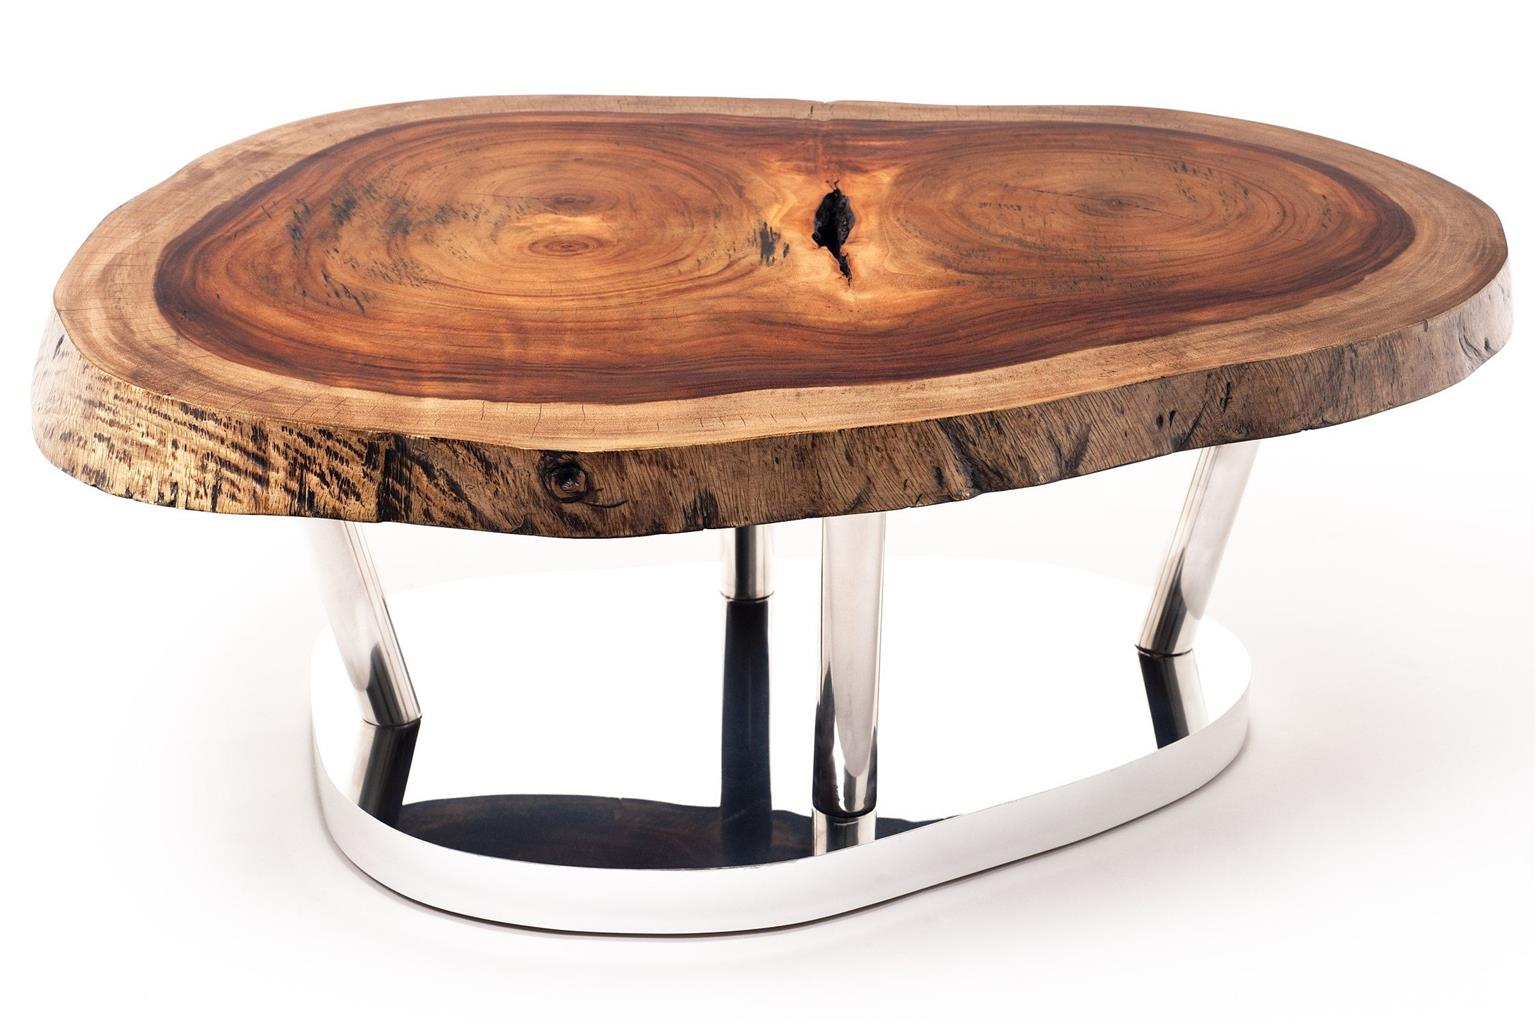 Life edge coffee tables with various leg options - starting from